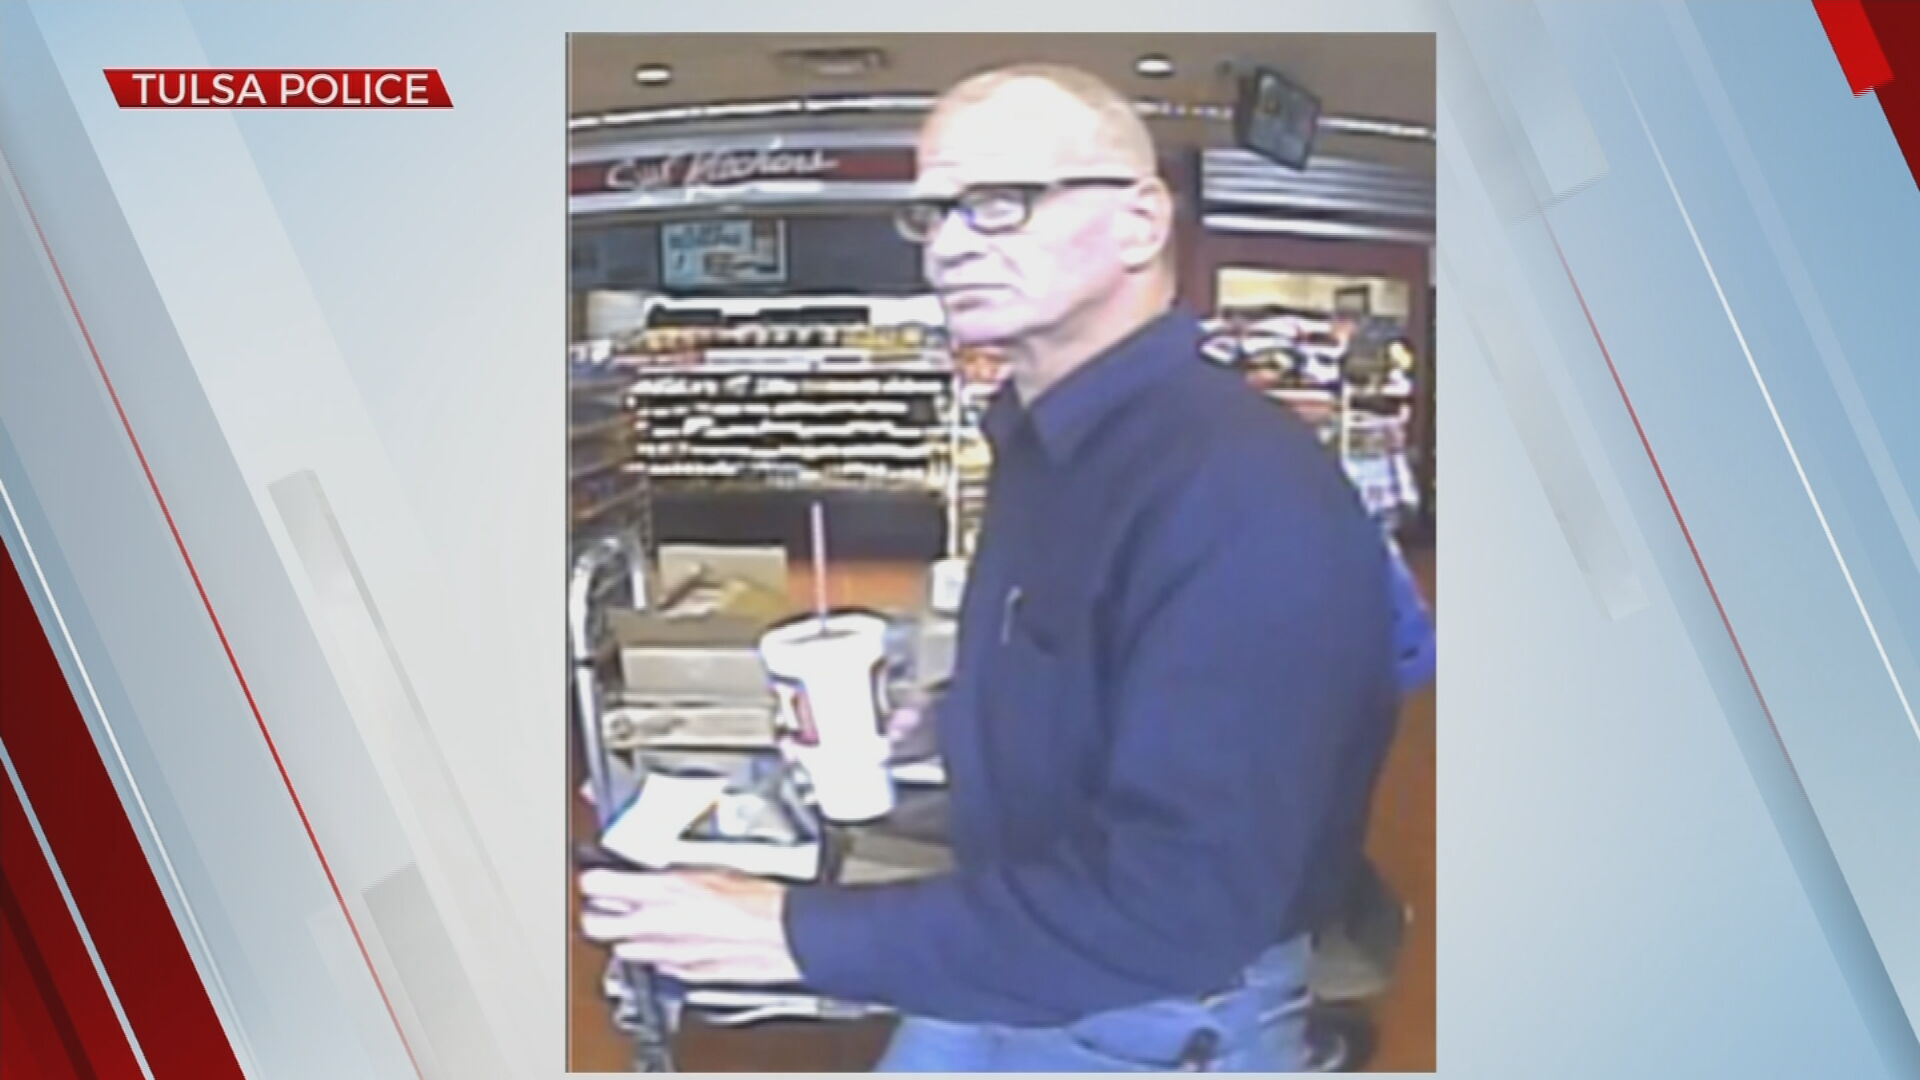 Tulsa Police Searching For Person Of Interest In Counterfeit Check Scam